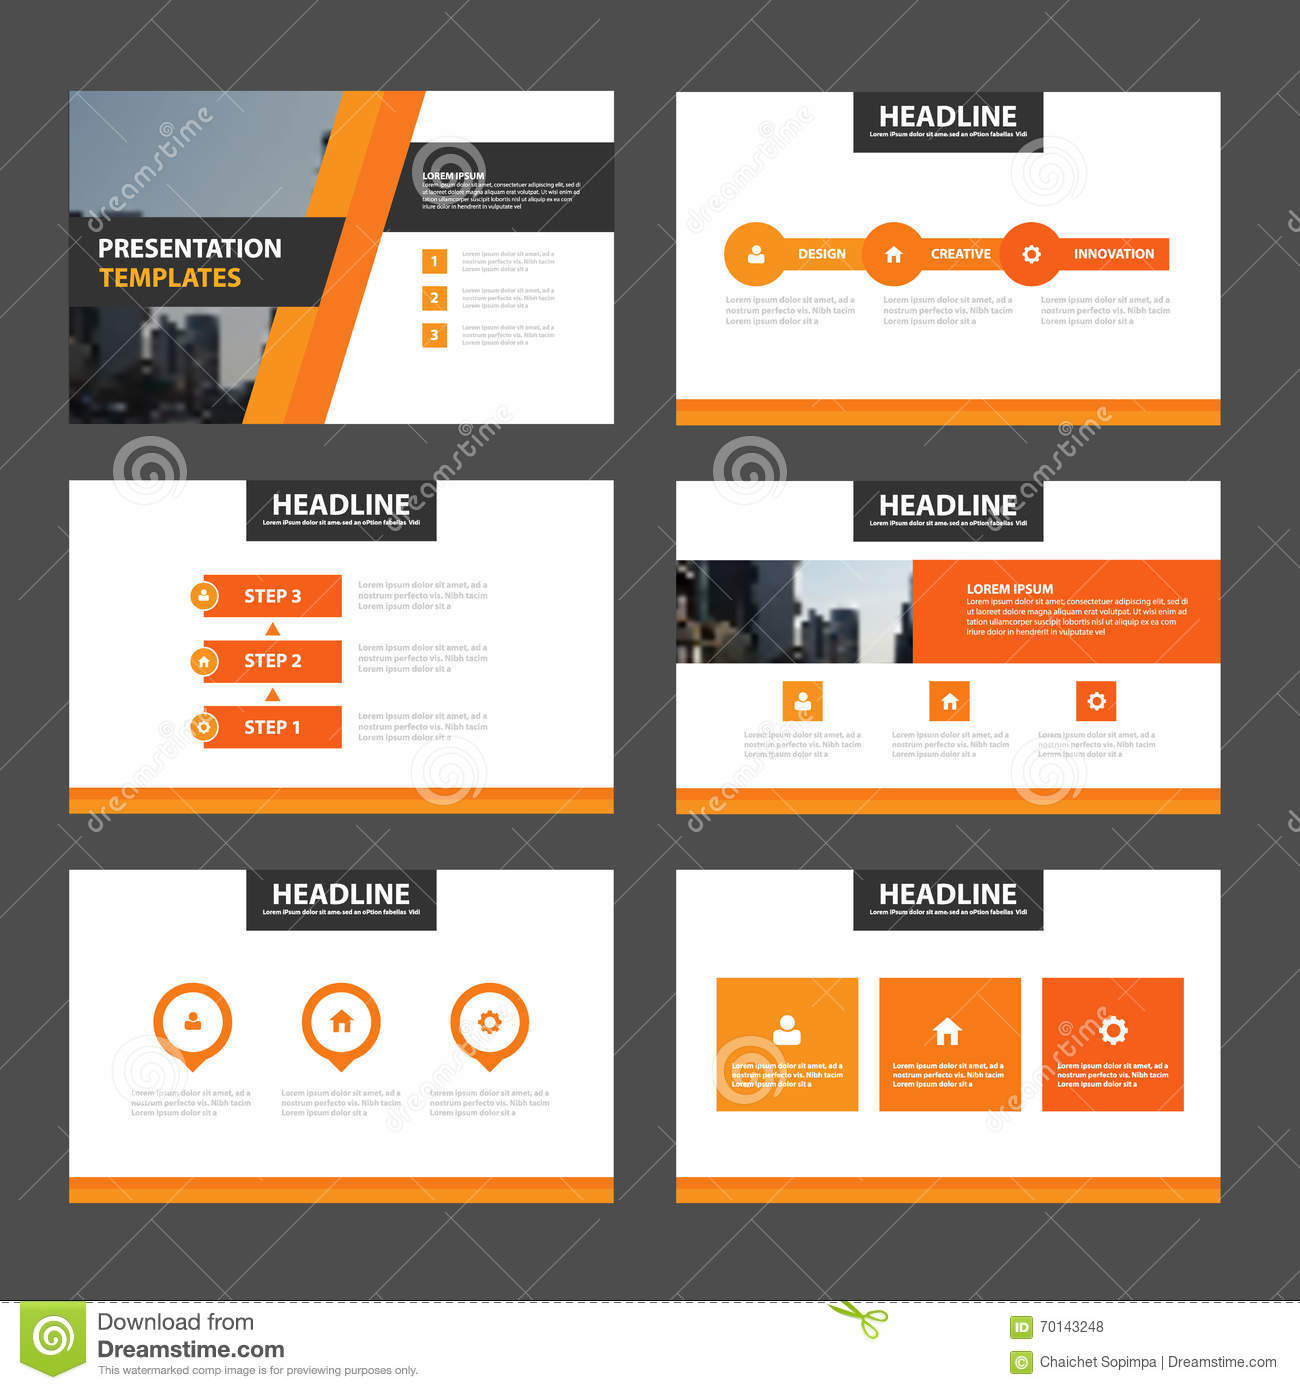 blue minimal presentation templates infographic elements flat elegance orange presentation templates infographic elements flat design set for brochure royalty stock photos